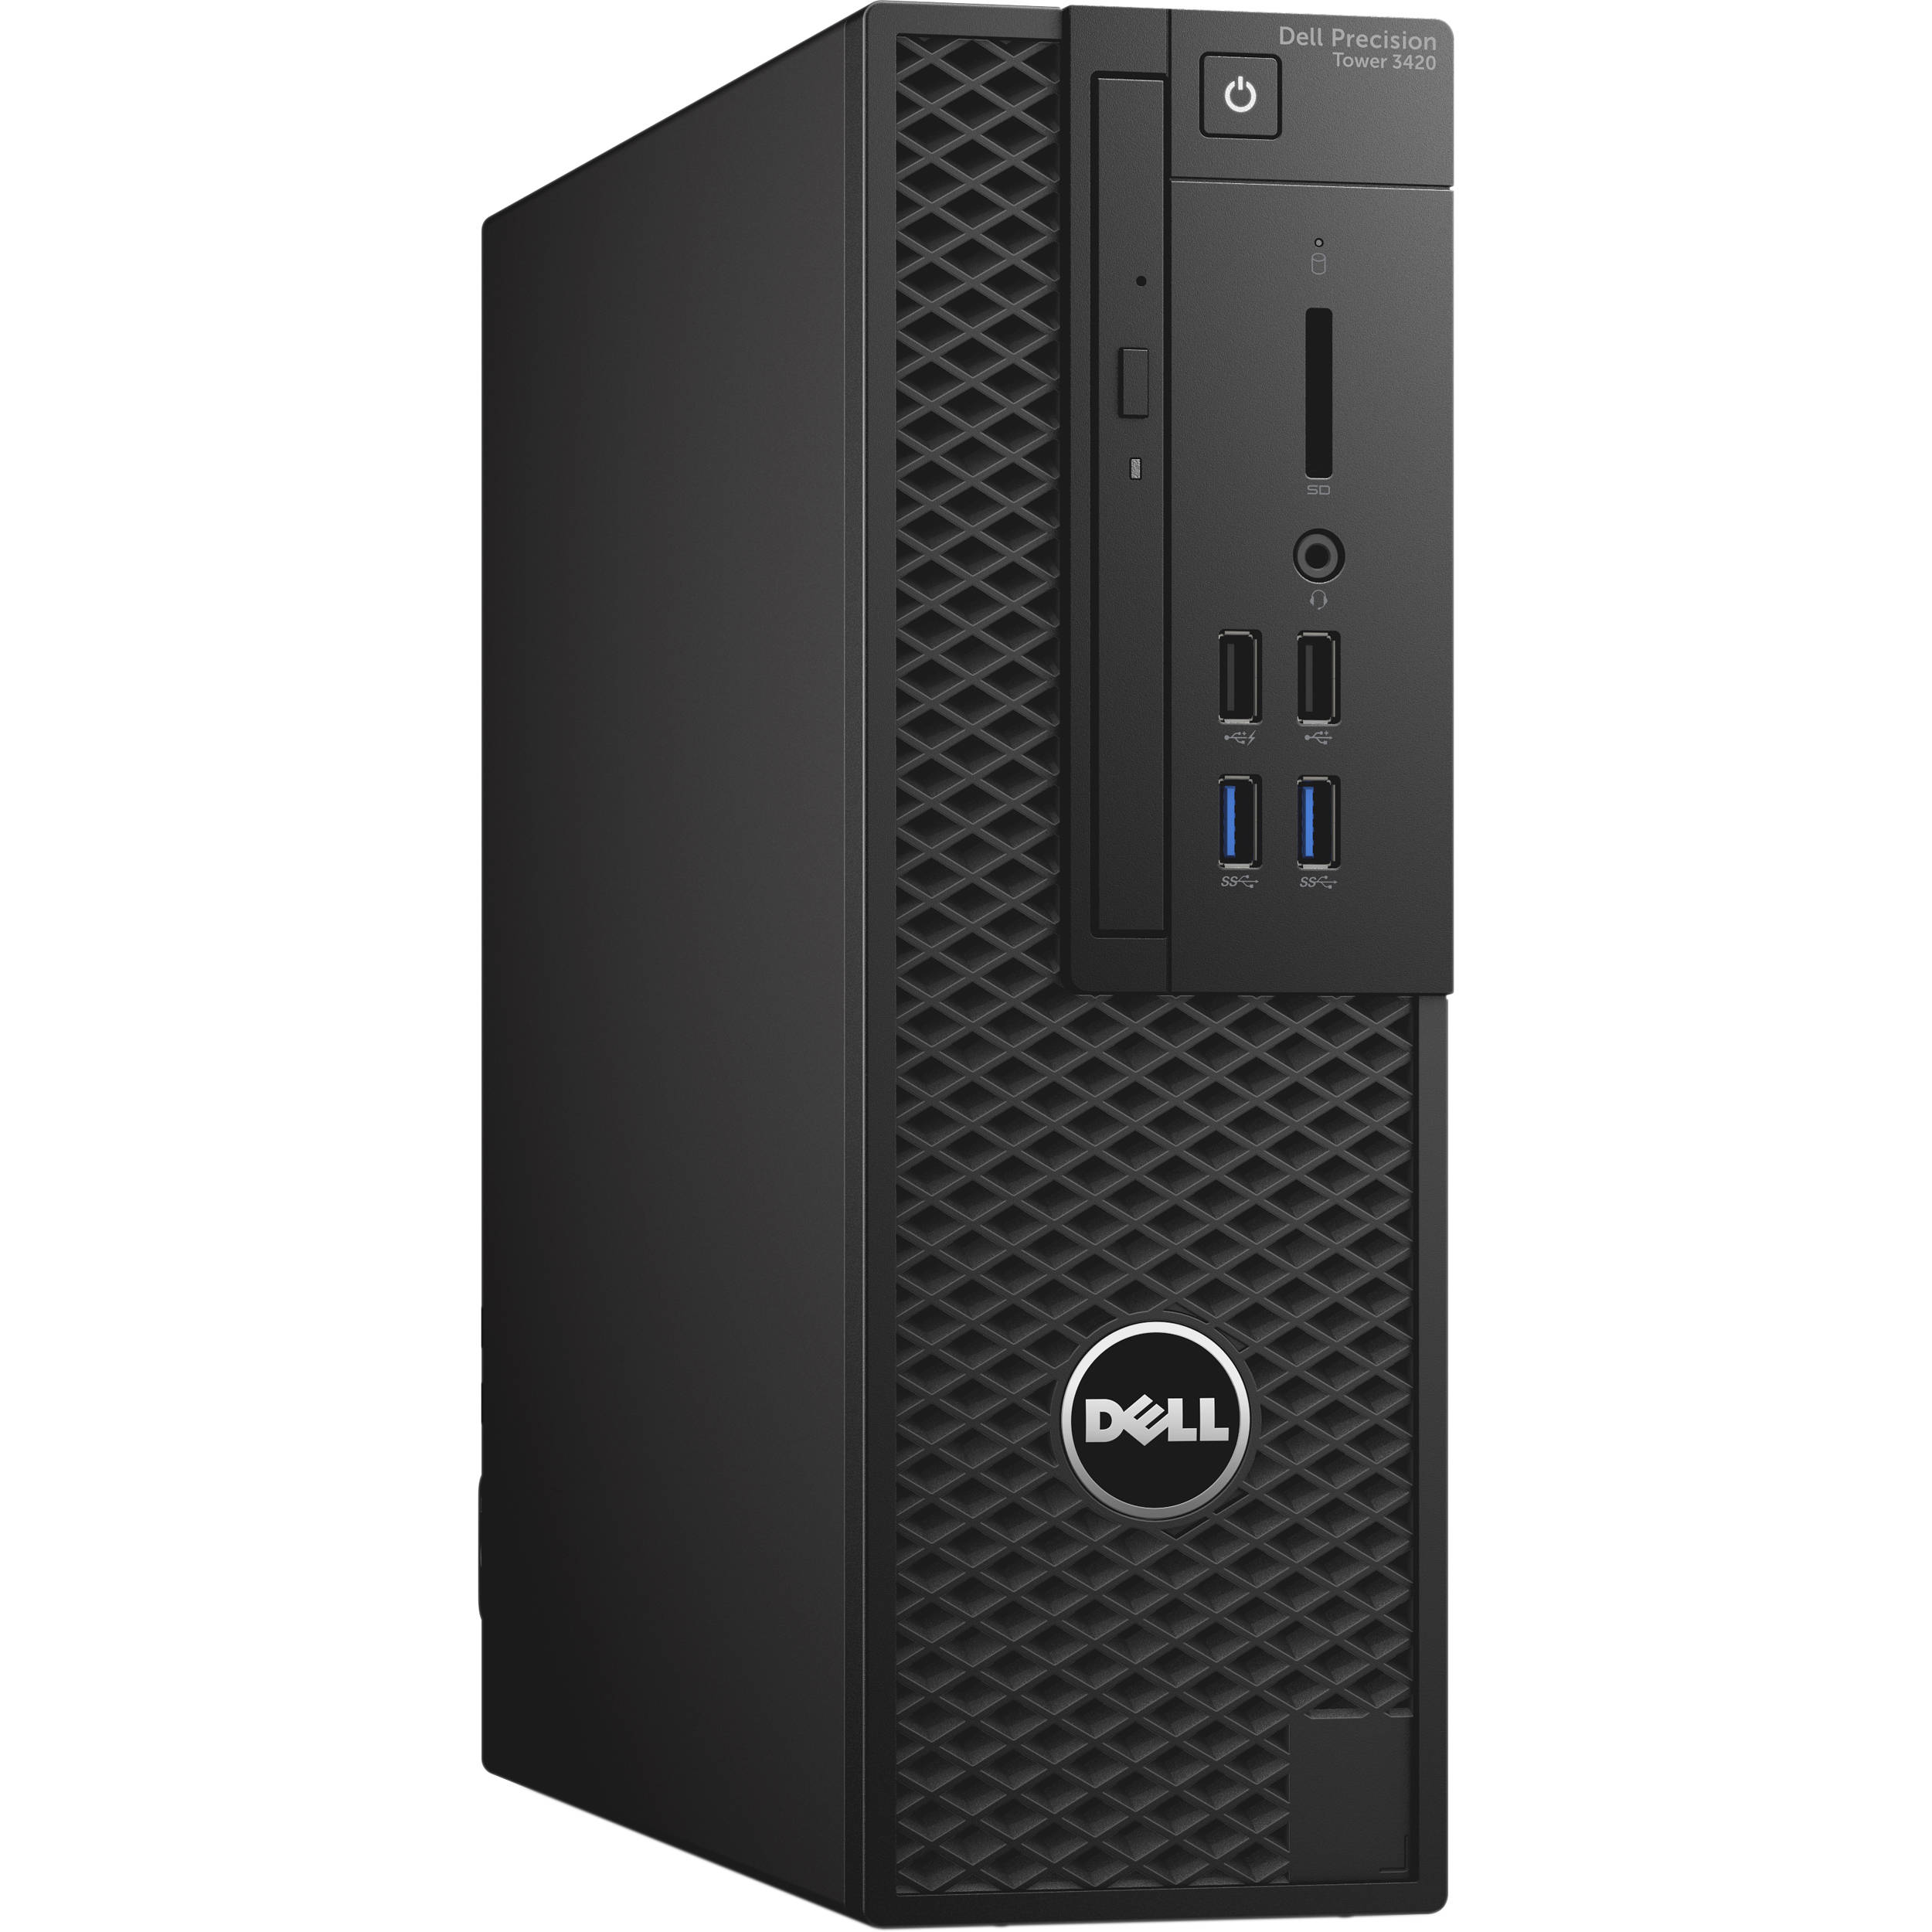 MÁY CHỦ SERVER DELL Precision T3420 Workstation Core™ i5-6500 3.2GHz